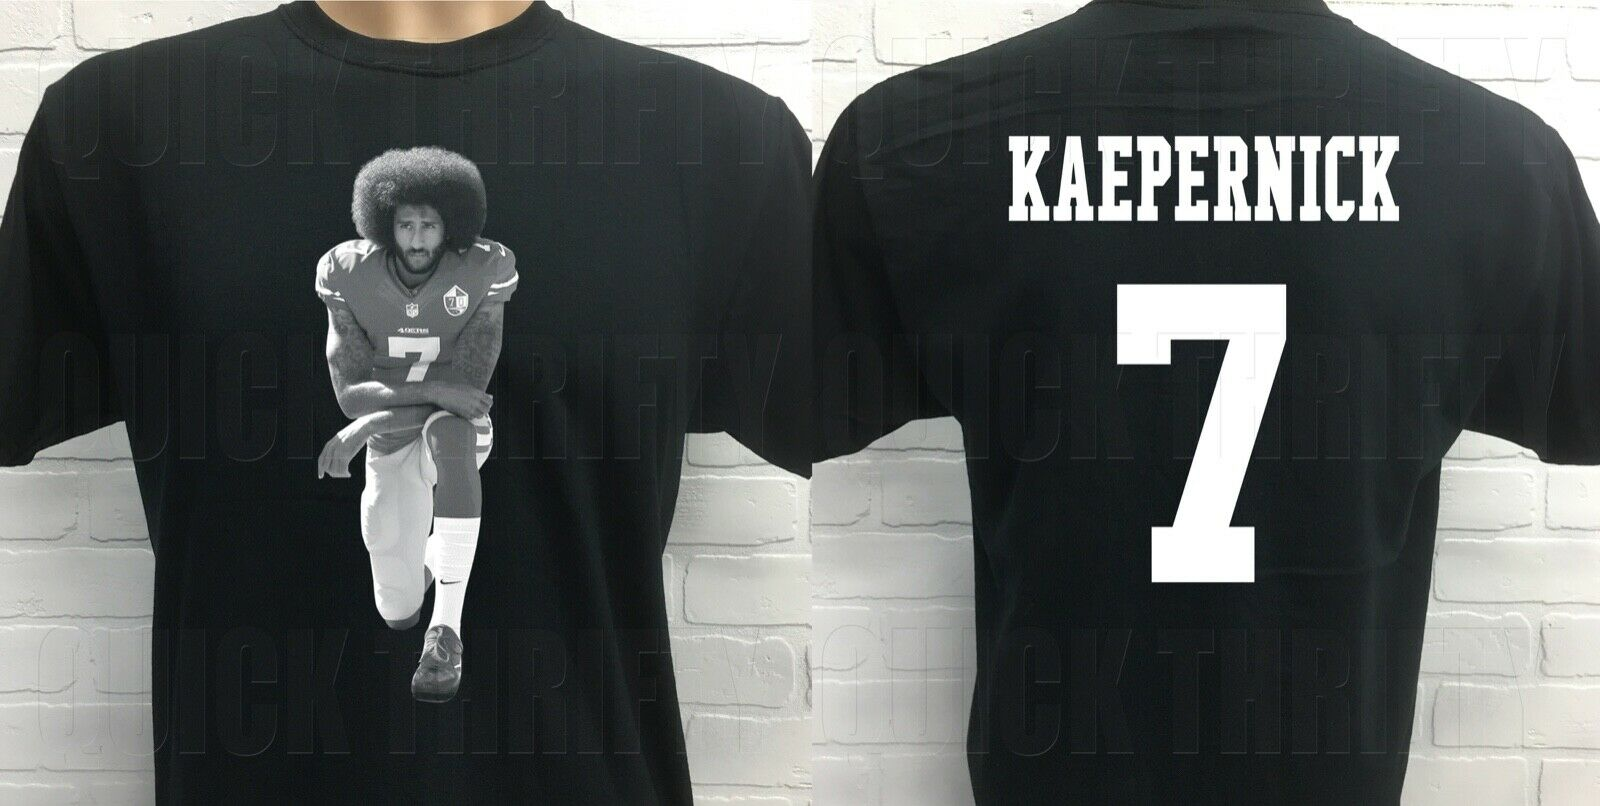 COLIN KAEPERNICK ***TAKE A KNEE*** DOUBLE SIDED BLACK T-SHIRT